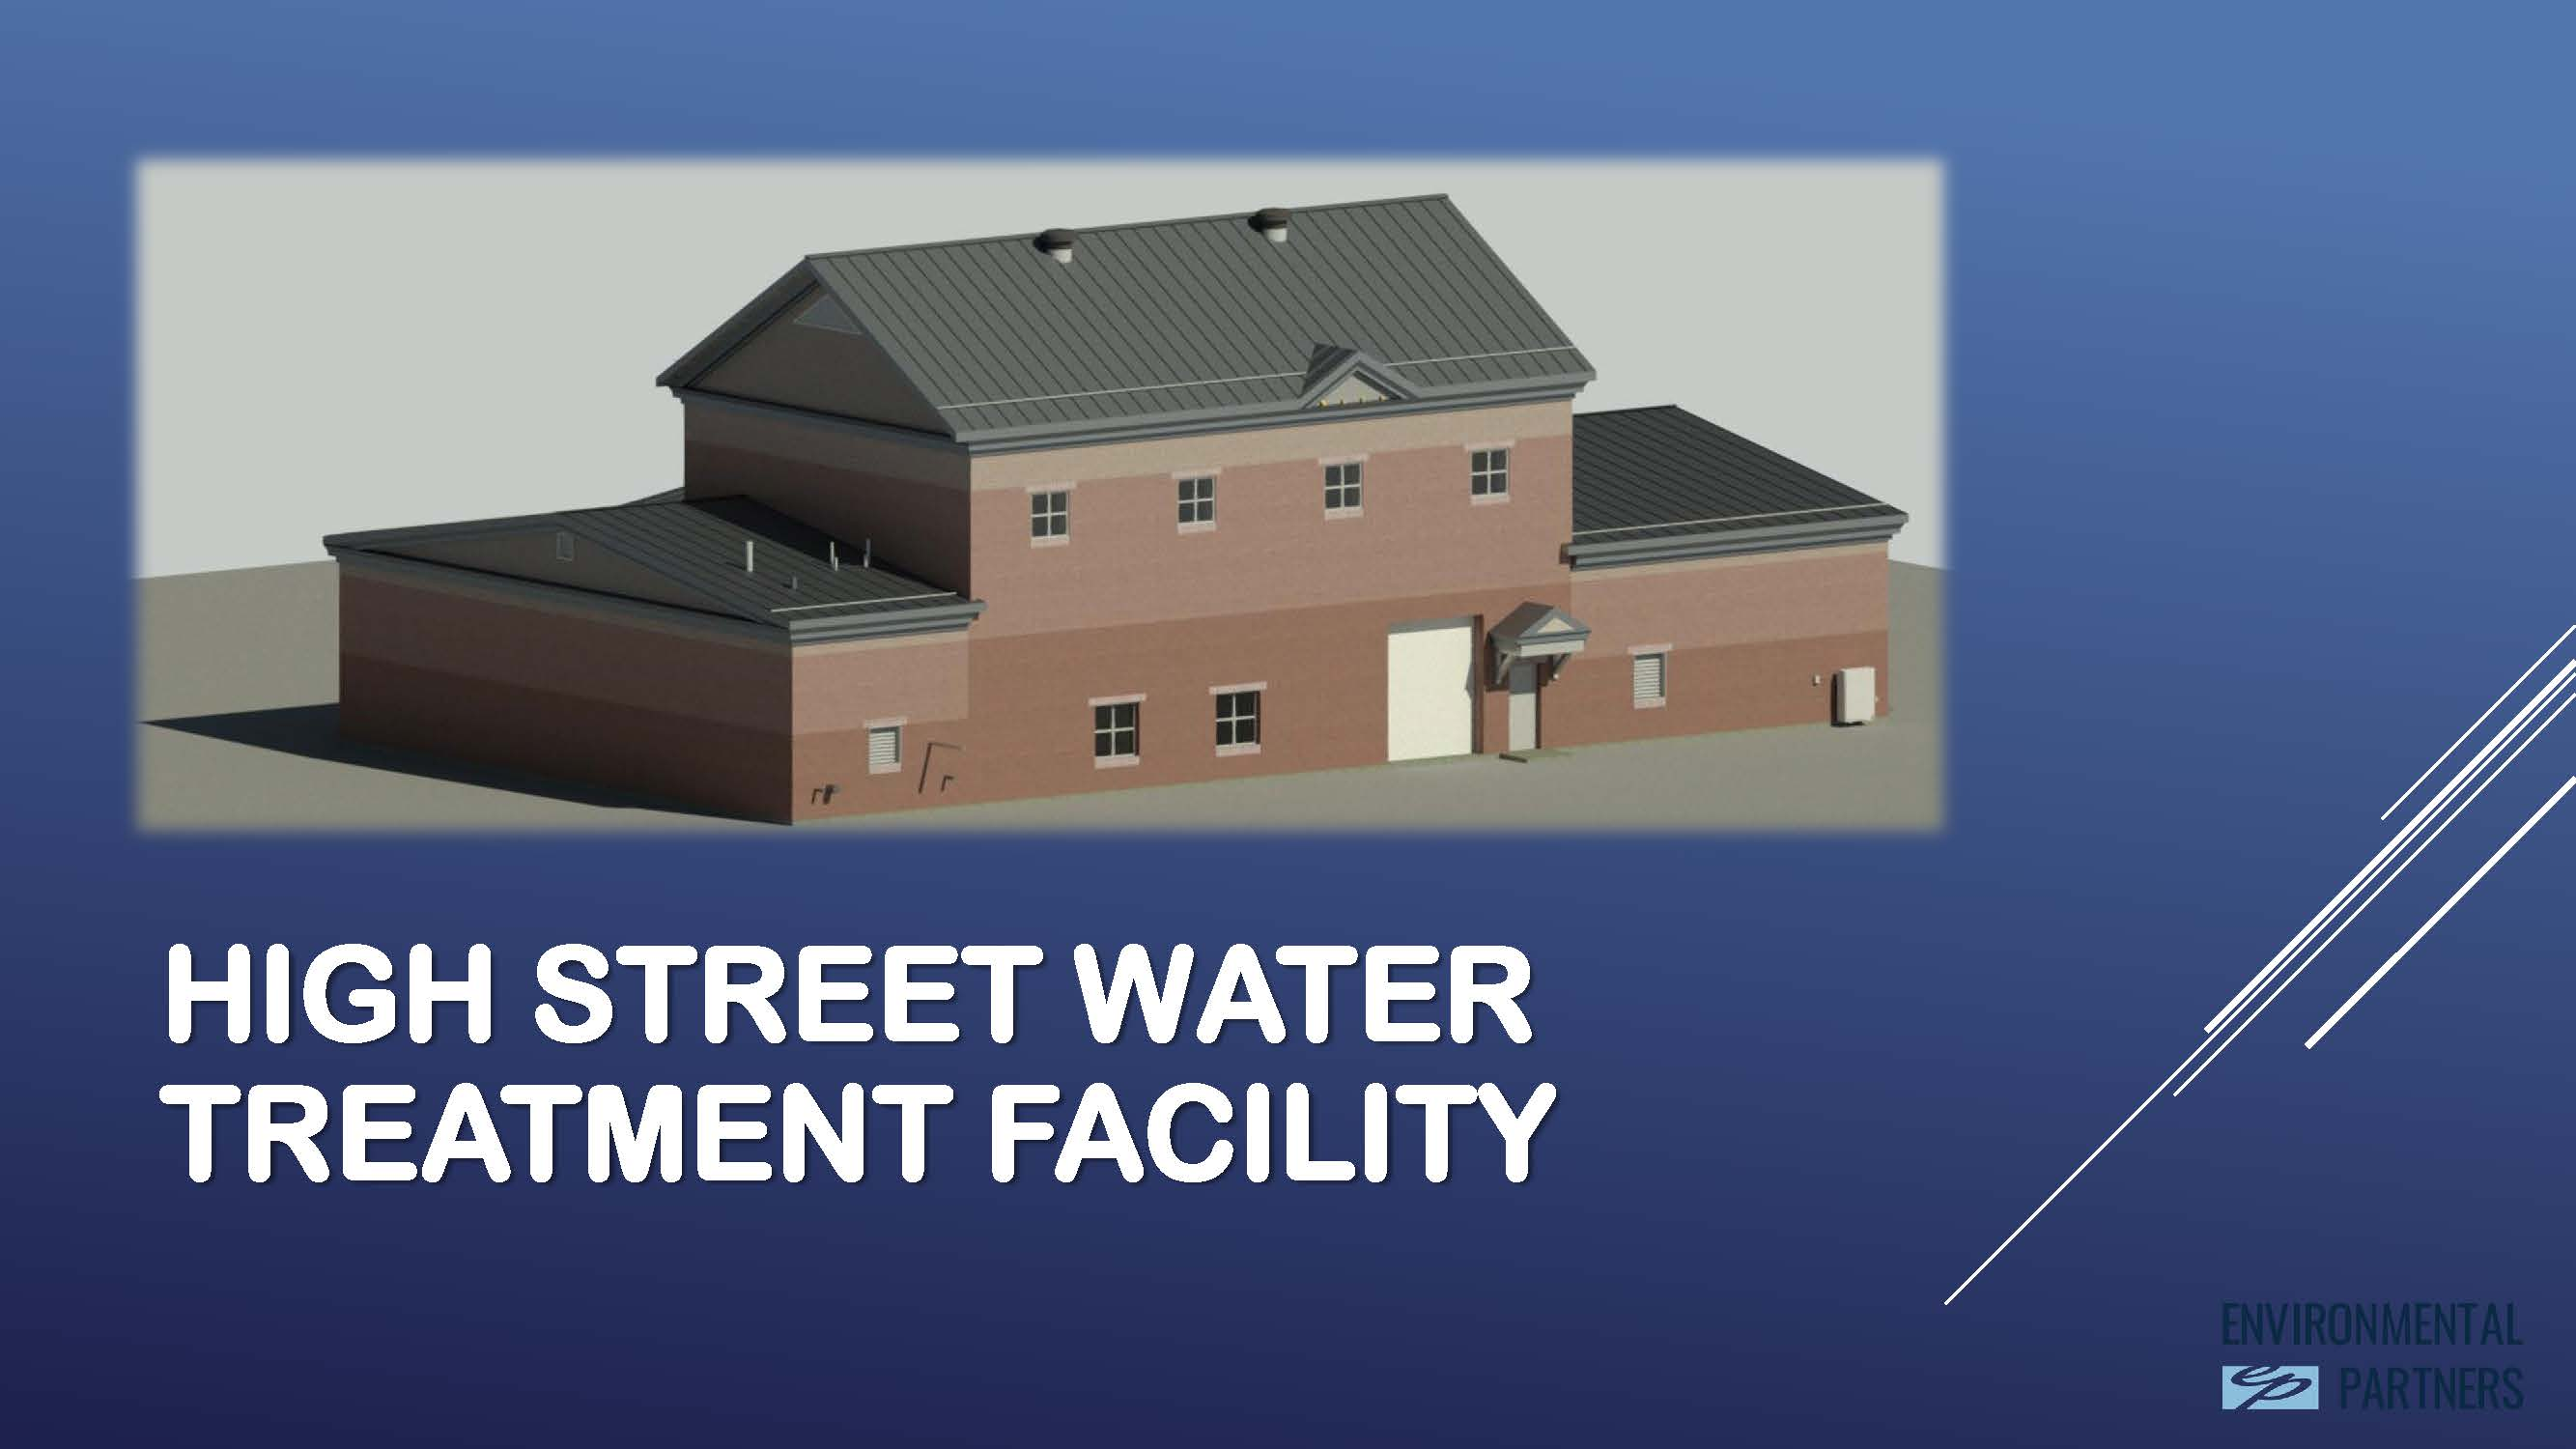 High Street Water Treatment Facility